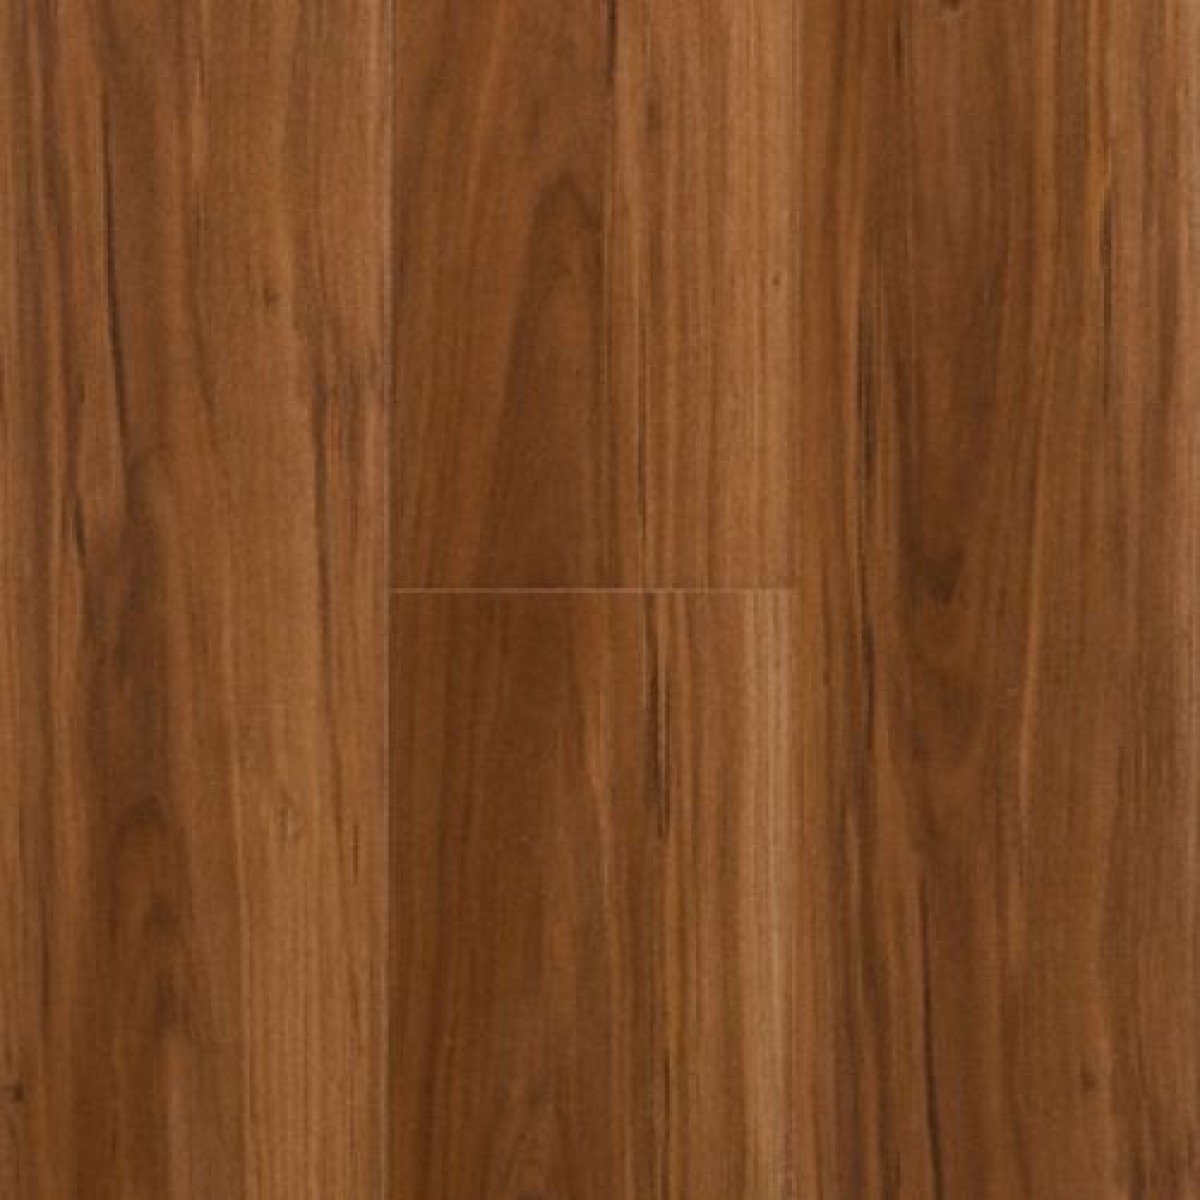 Bamboo Flooring Canberra Preference Classic Laminates Brush Box Get Floors